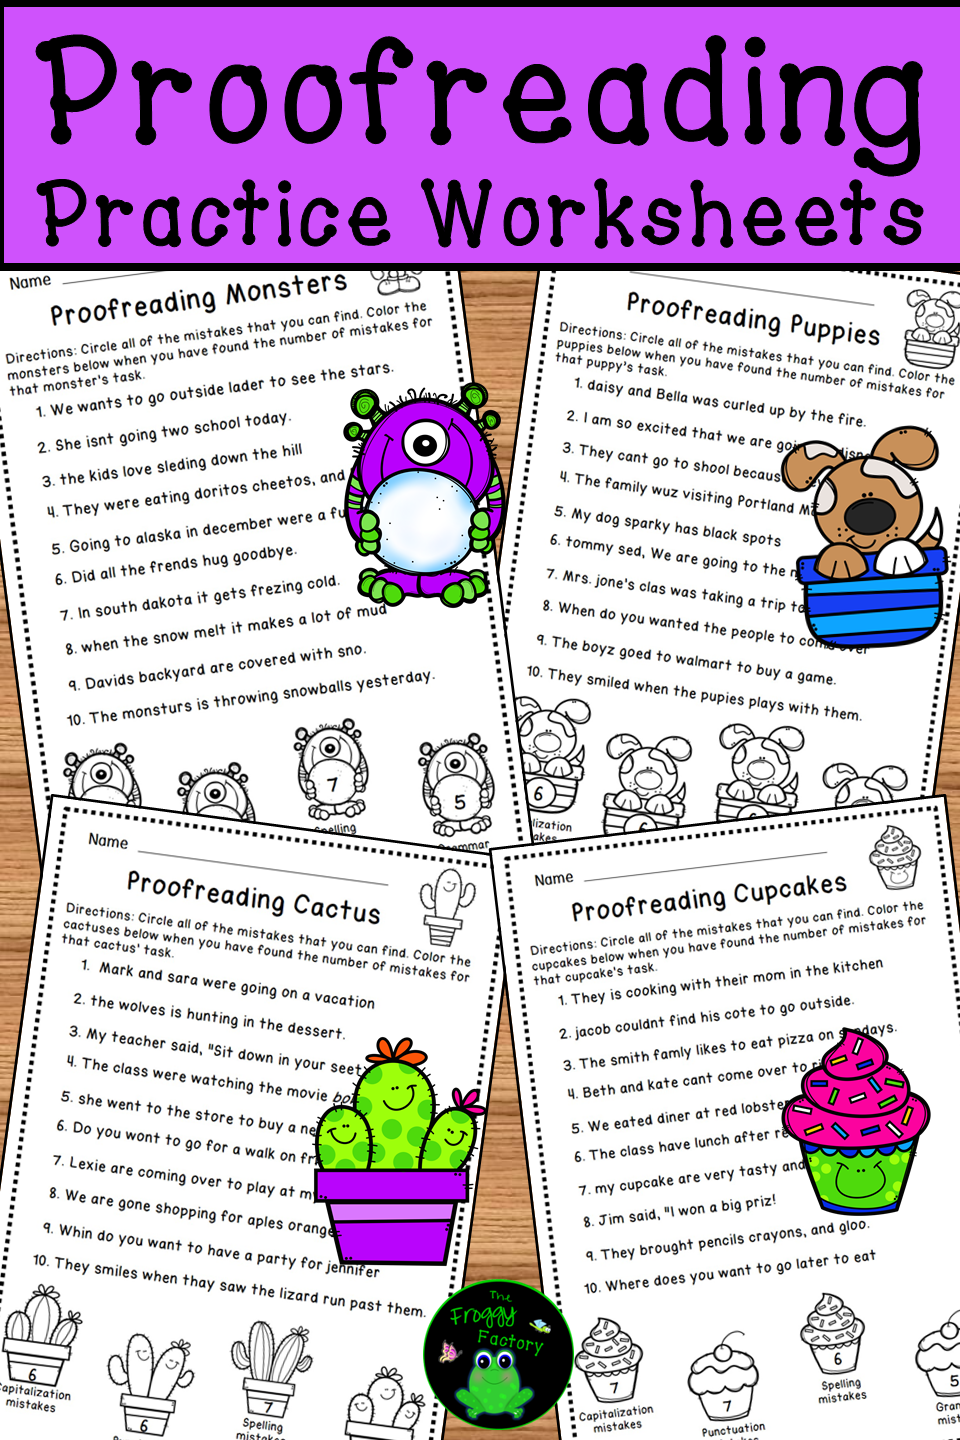 Proofreading Practice Worksheets   Elementary writing [ 1440 x 960 Pixel ]